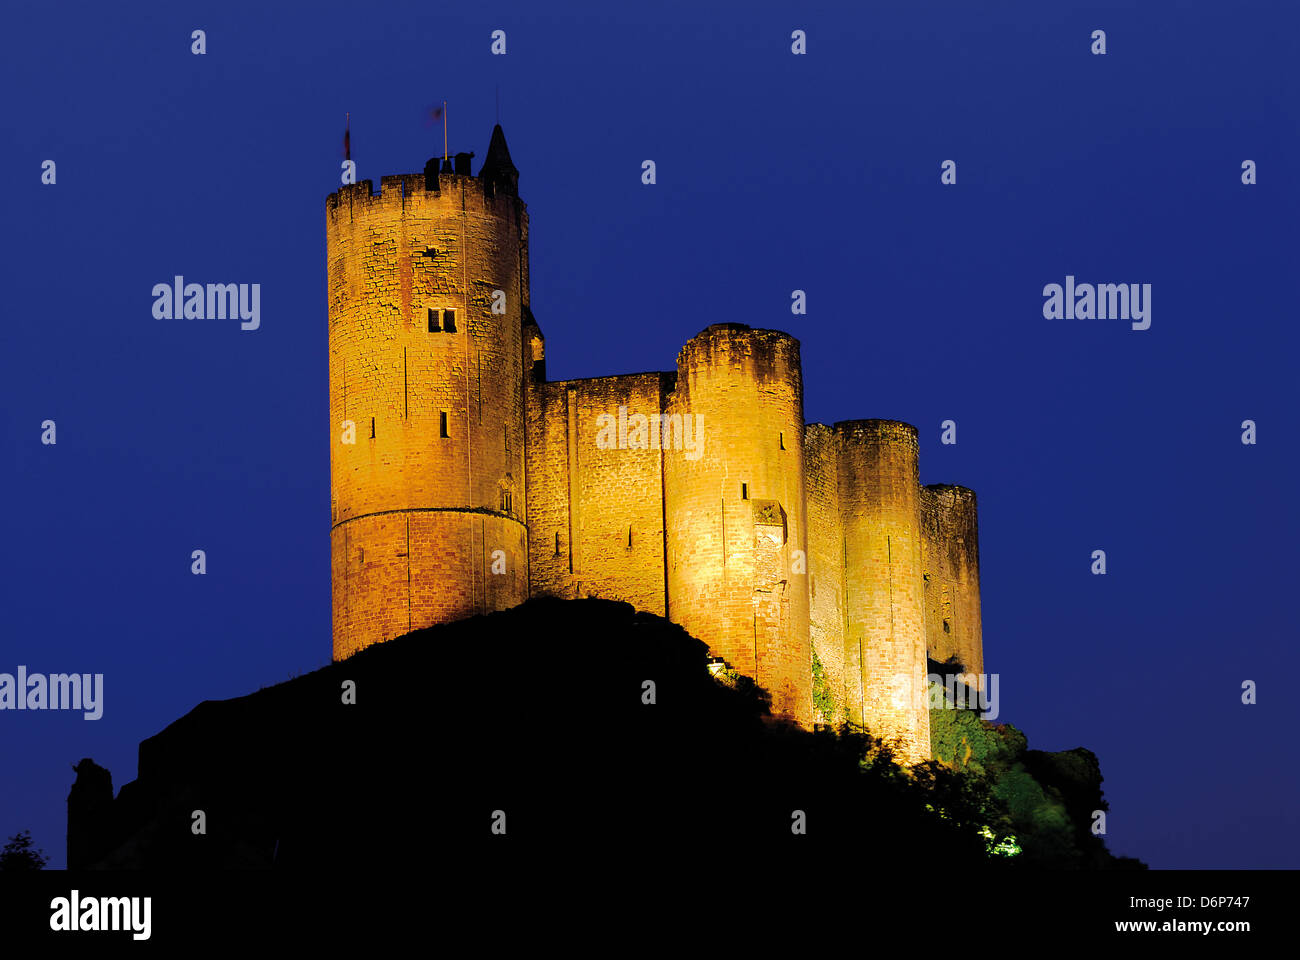 France, Midi-Pyrenees: Chateau du Najac by night - Stock Image